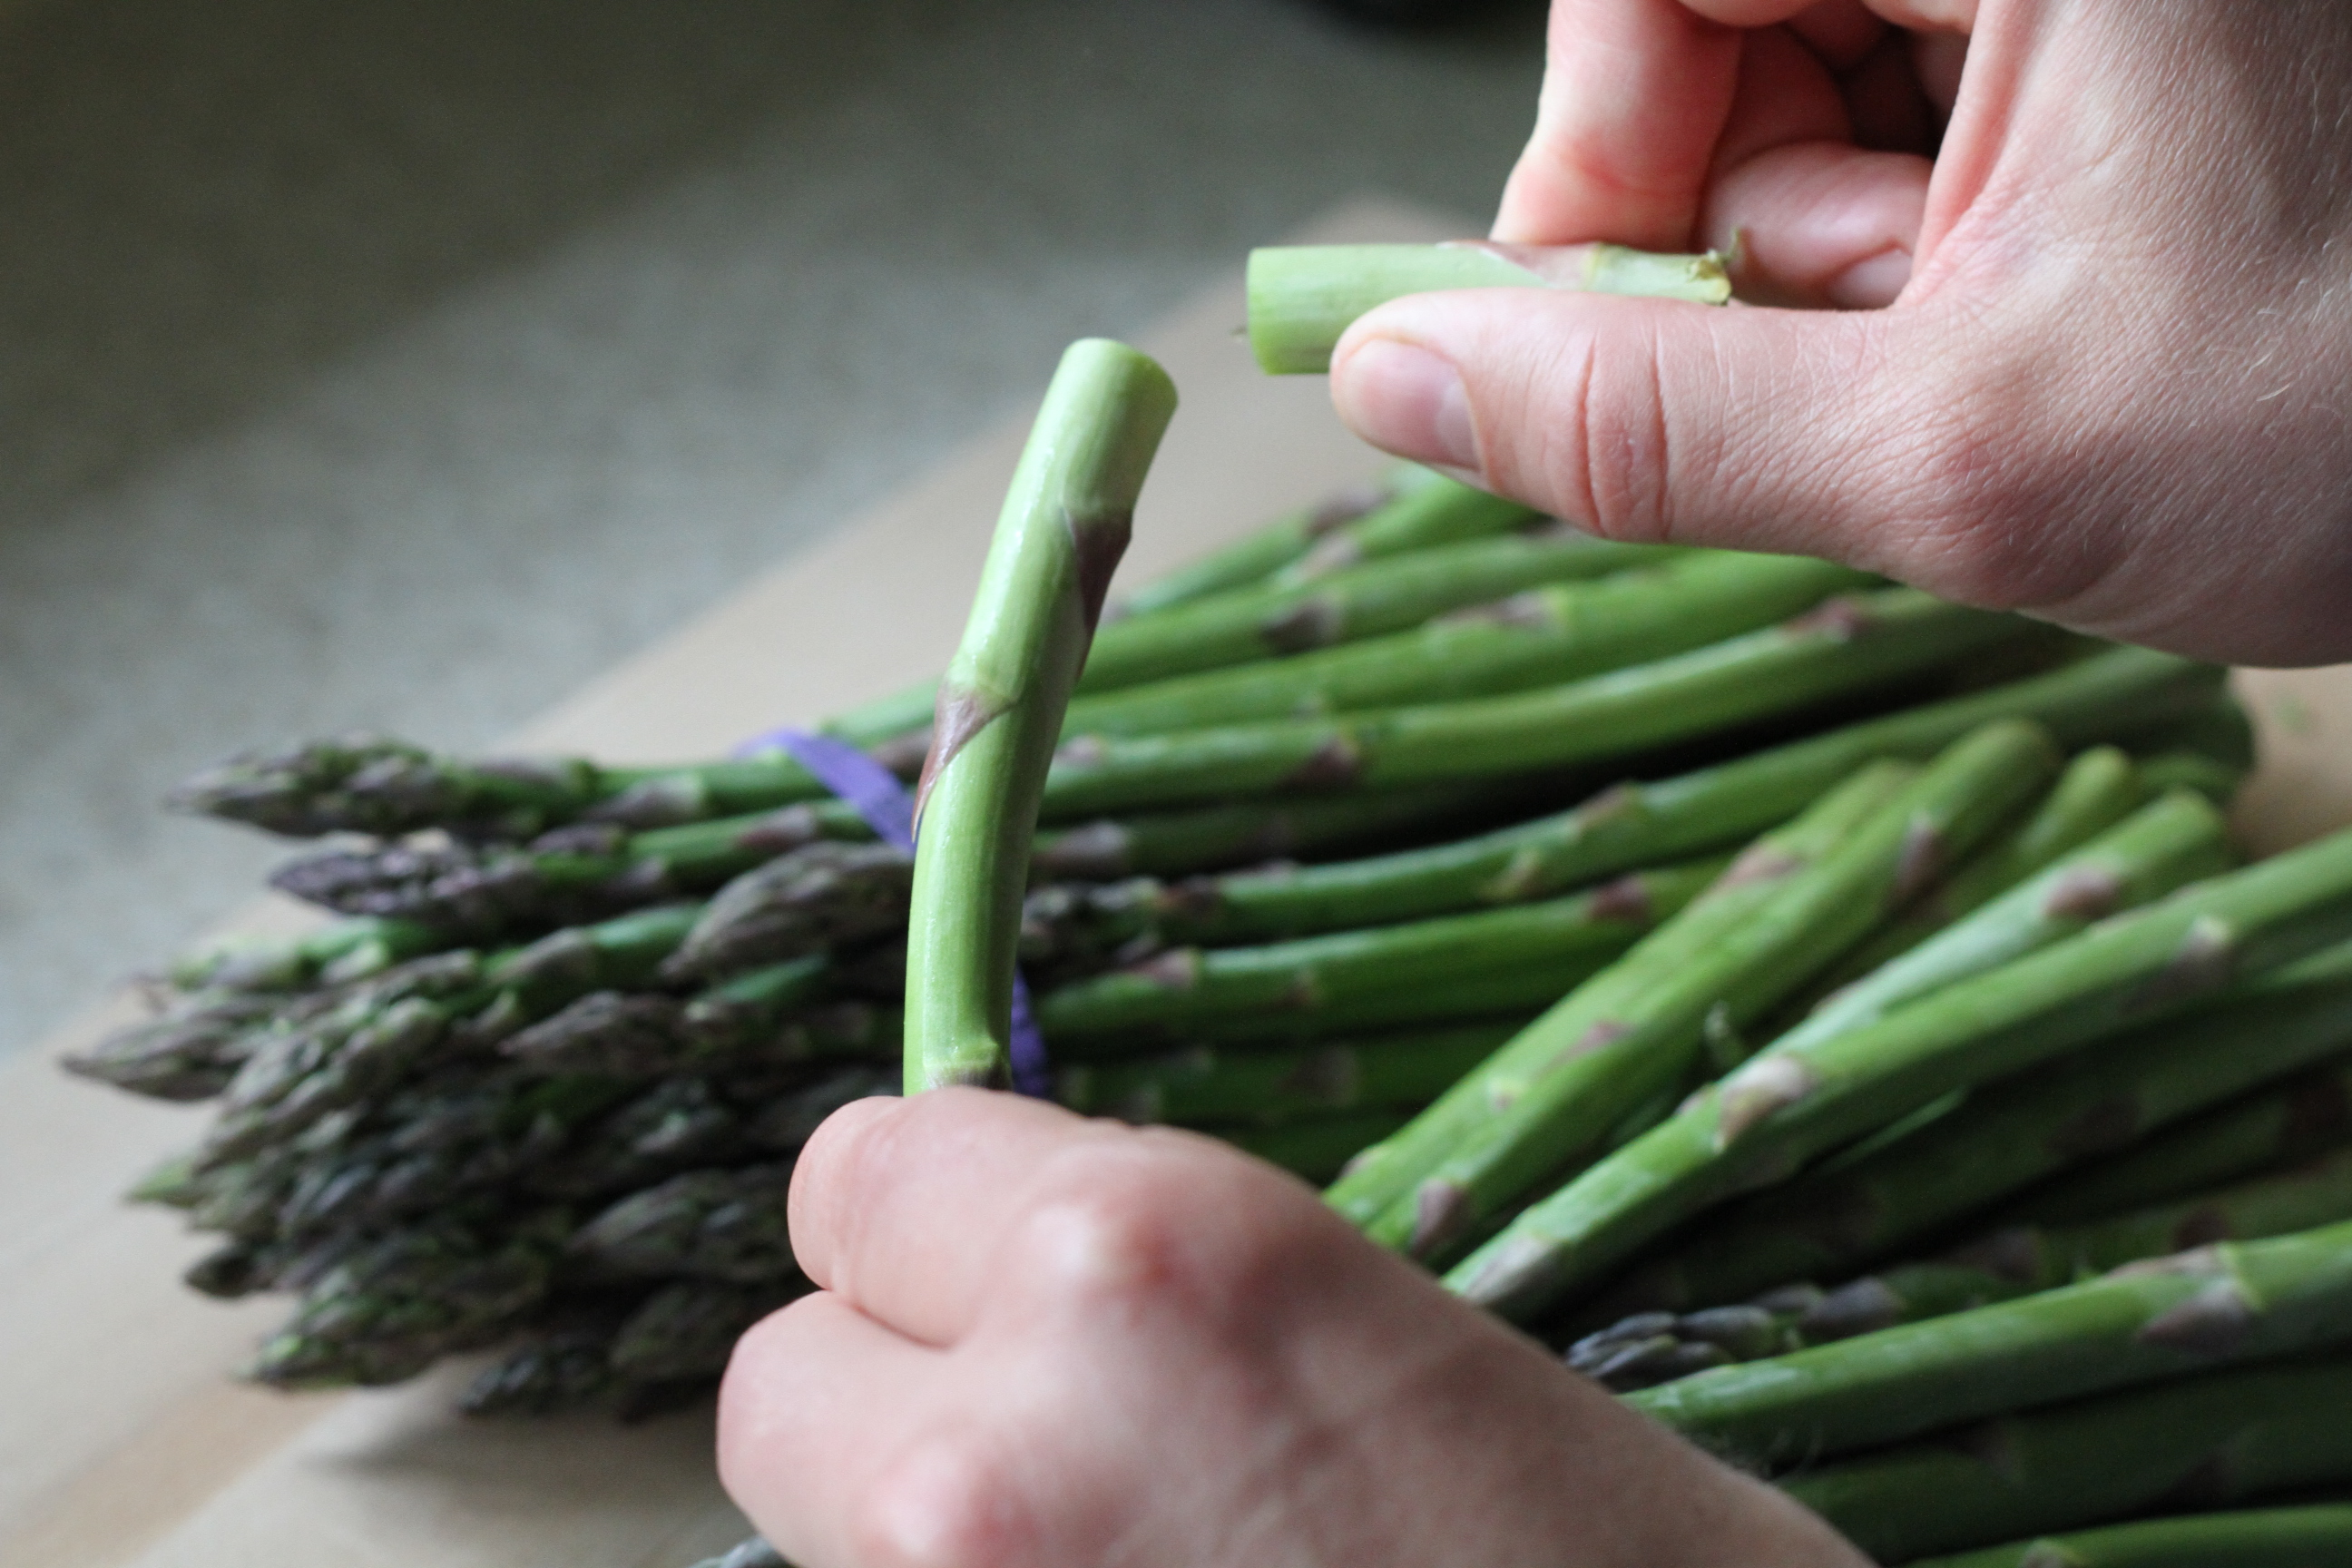 How To: Roast Asparagusa Step By Step Guide To Making This Tasty Side